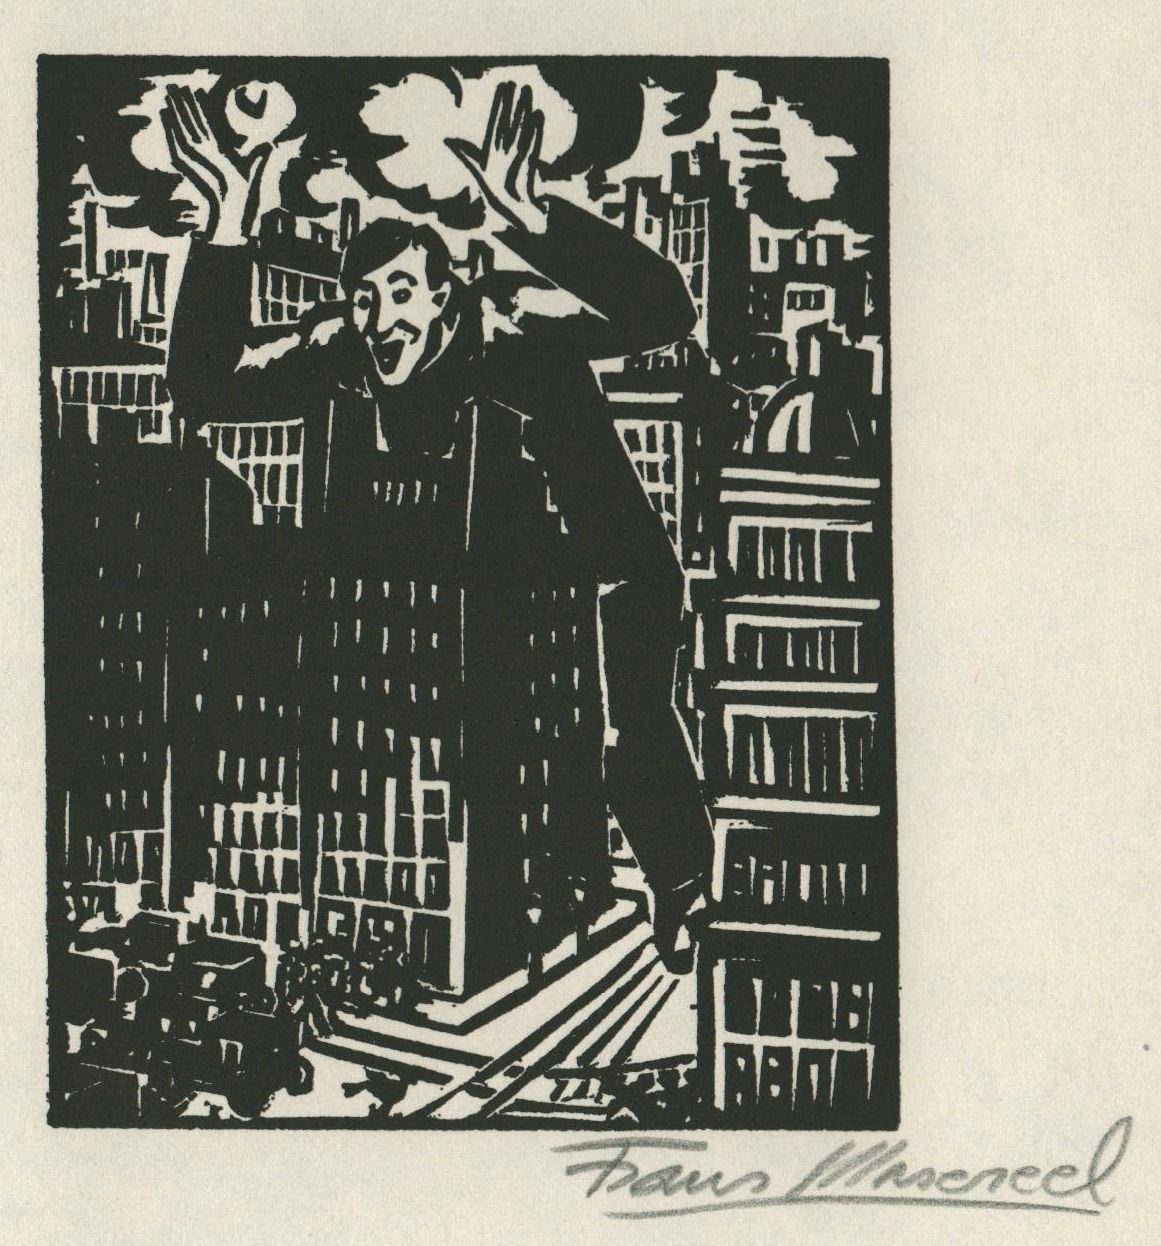 Woodcut by Belgian artist Frans Masereel from the work l\'oeuvre from 1928